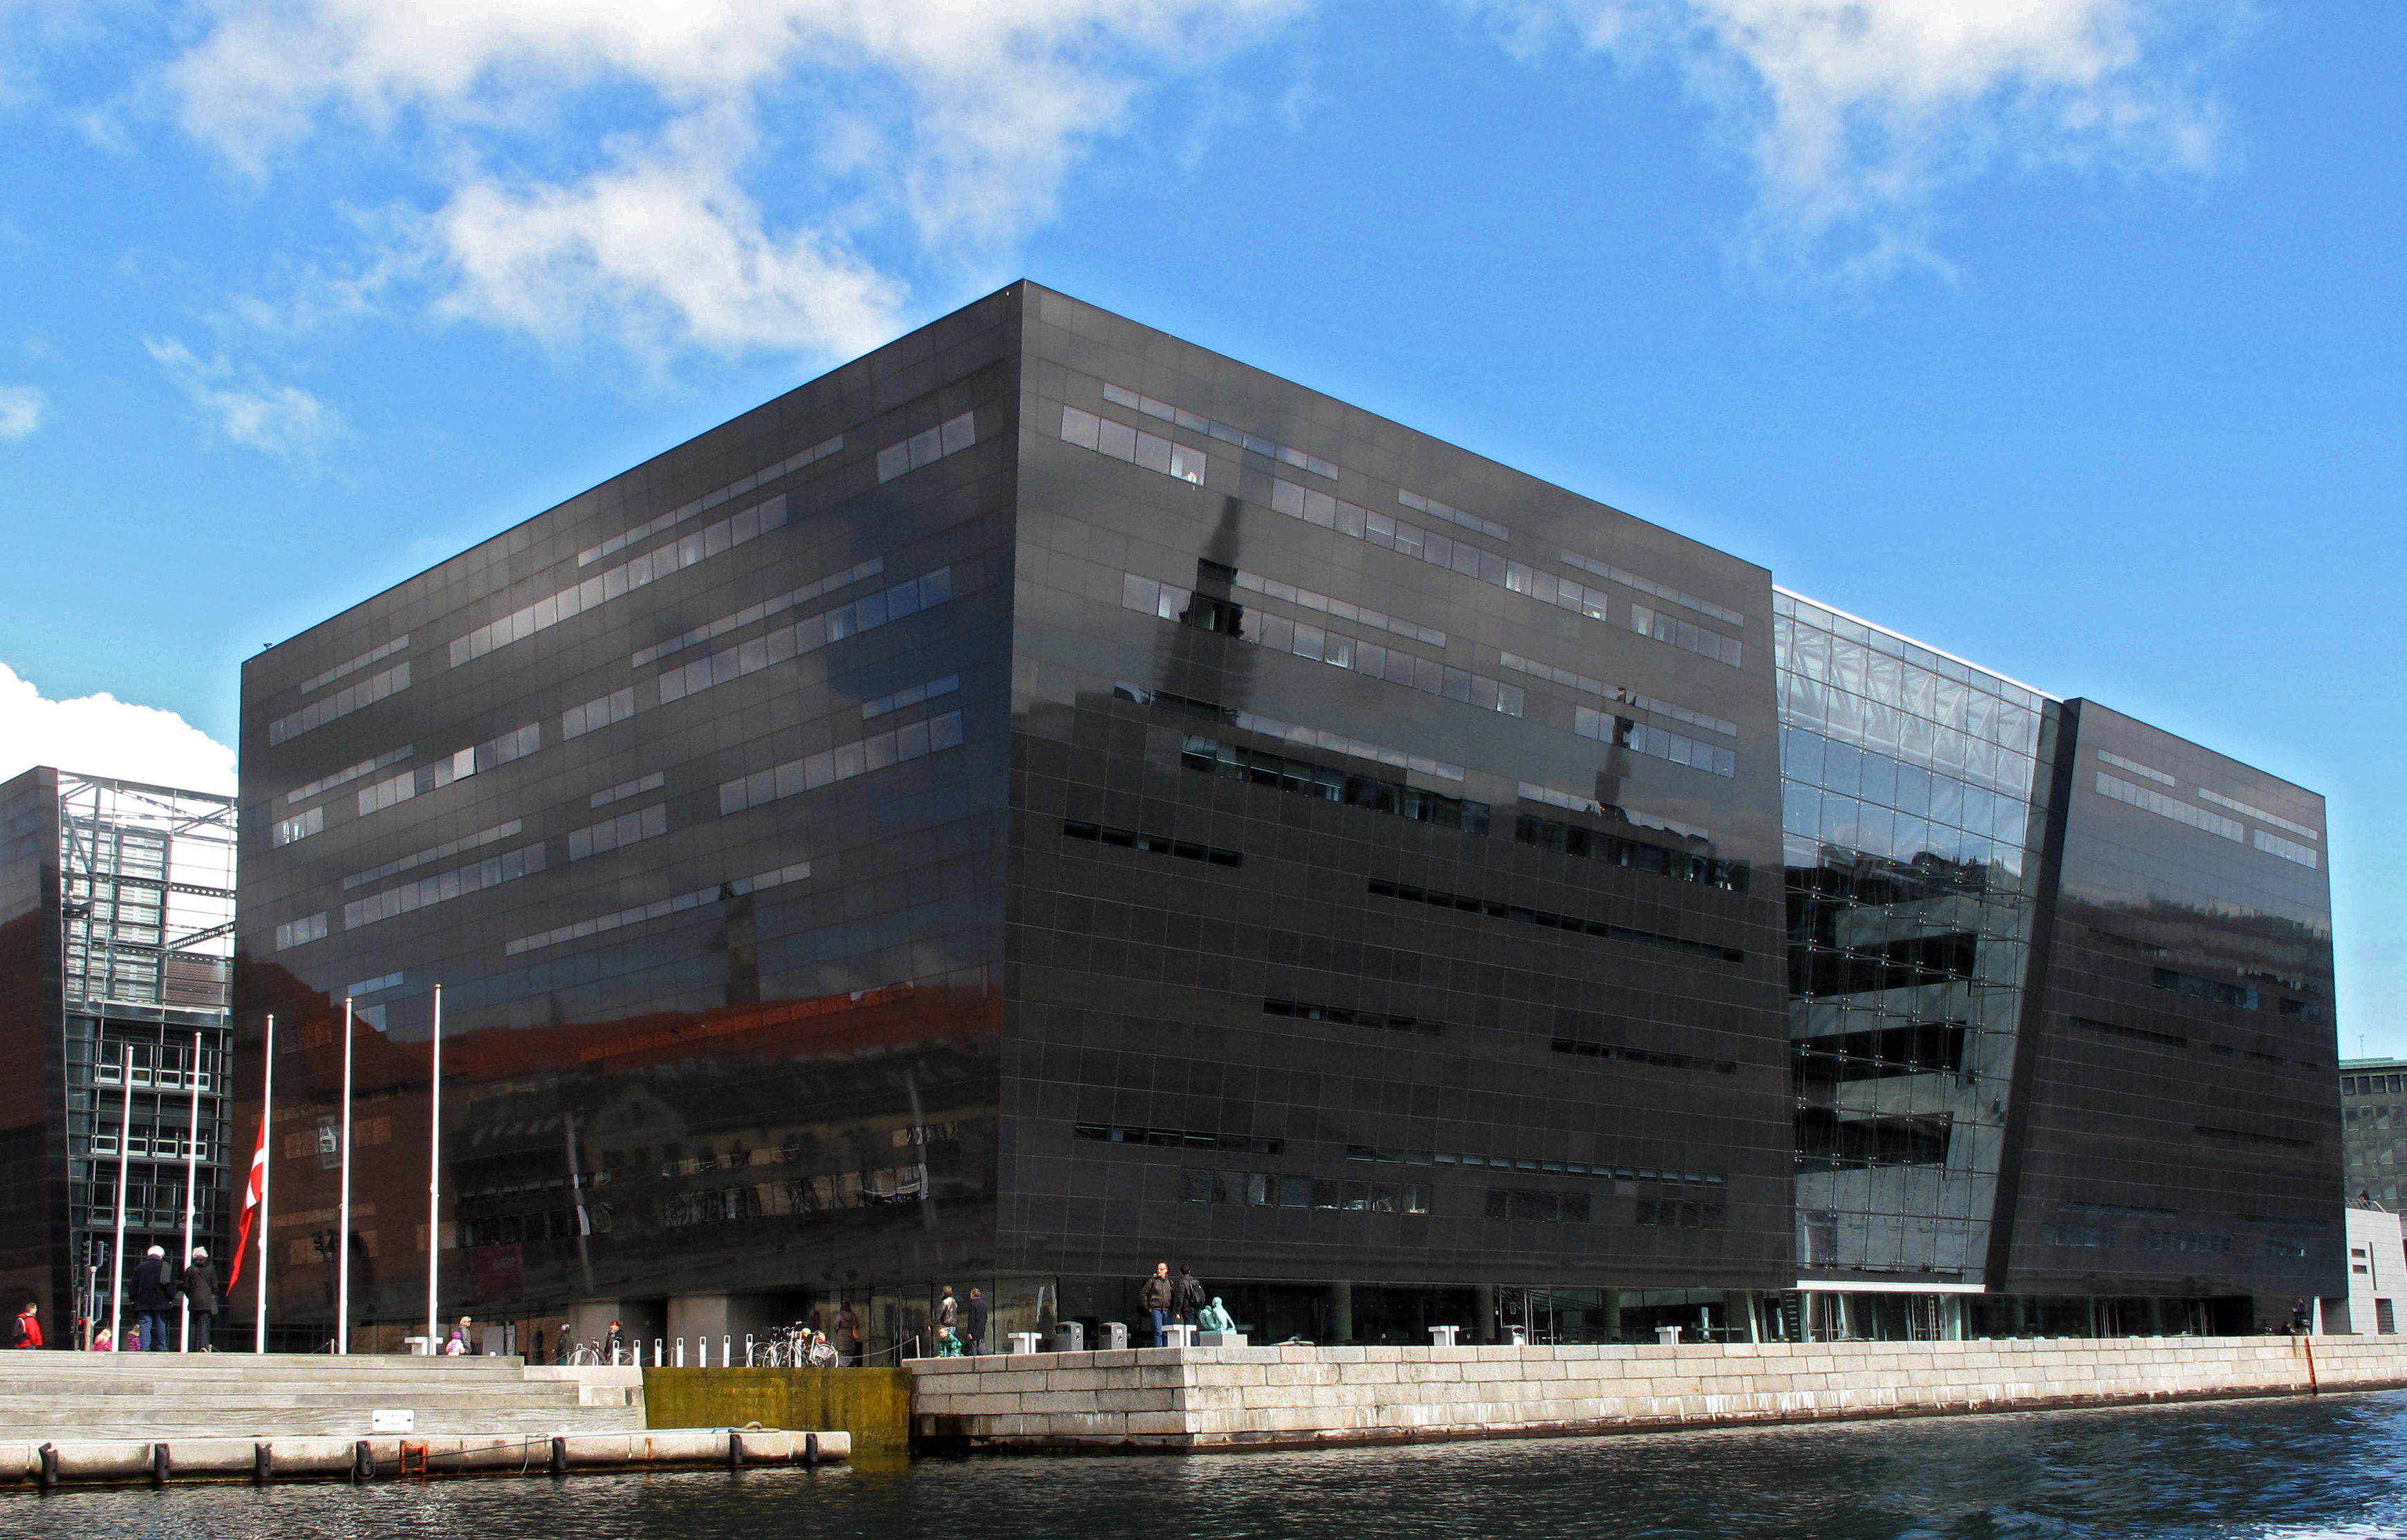 View of the modern waterfront extension to the Royal Danish Library The Black Diamond in Copenhagen on April 18, 2014.